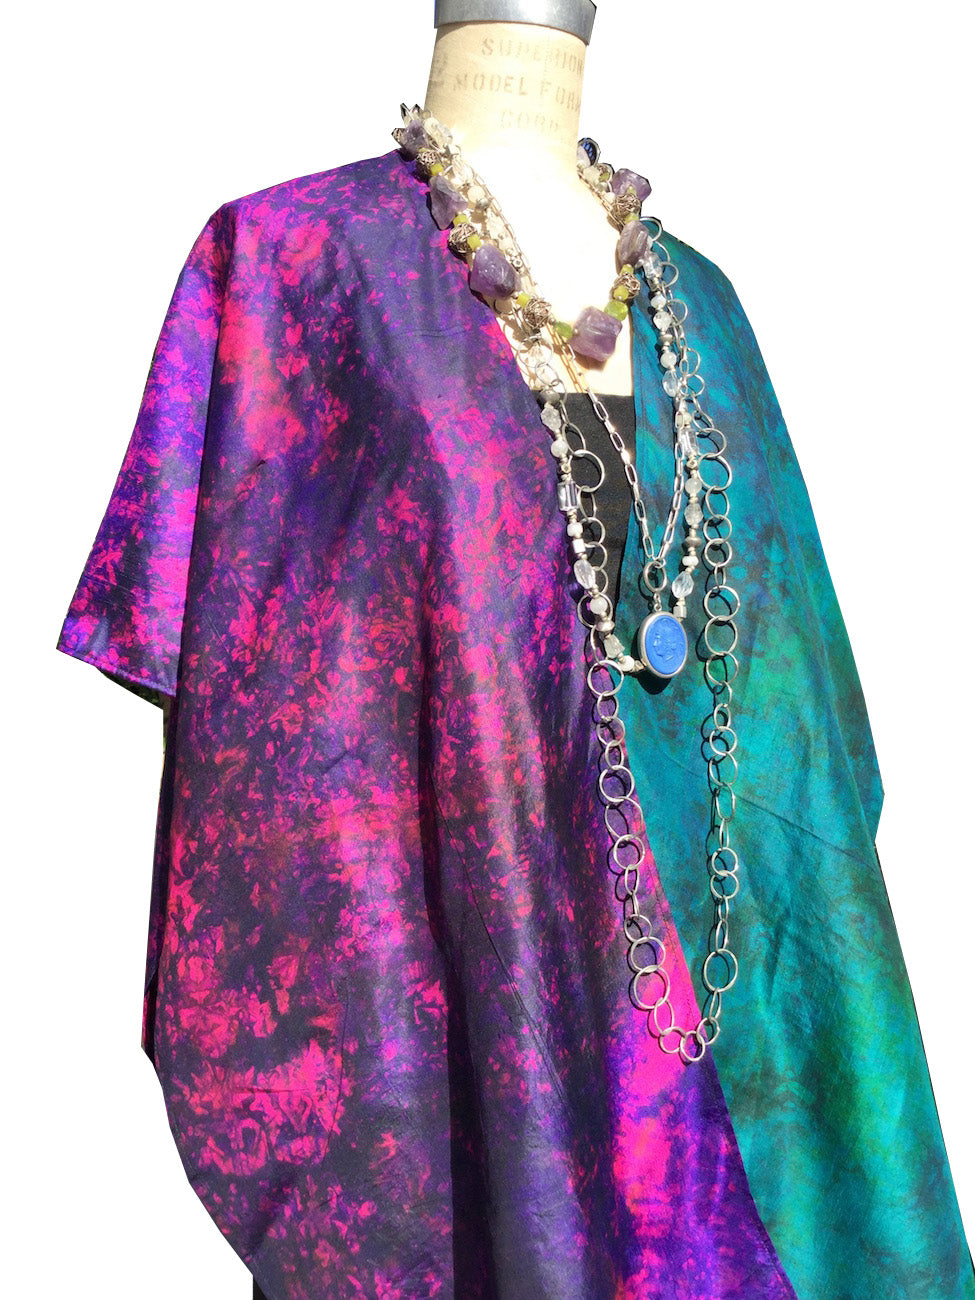 Silk Cape Almost Famous Collection - Studio 54